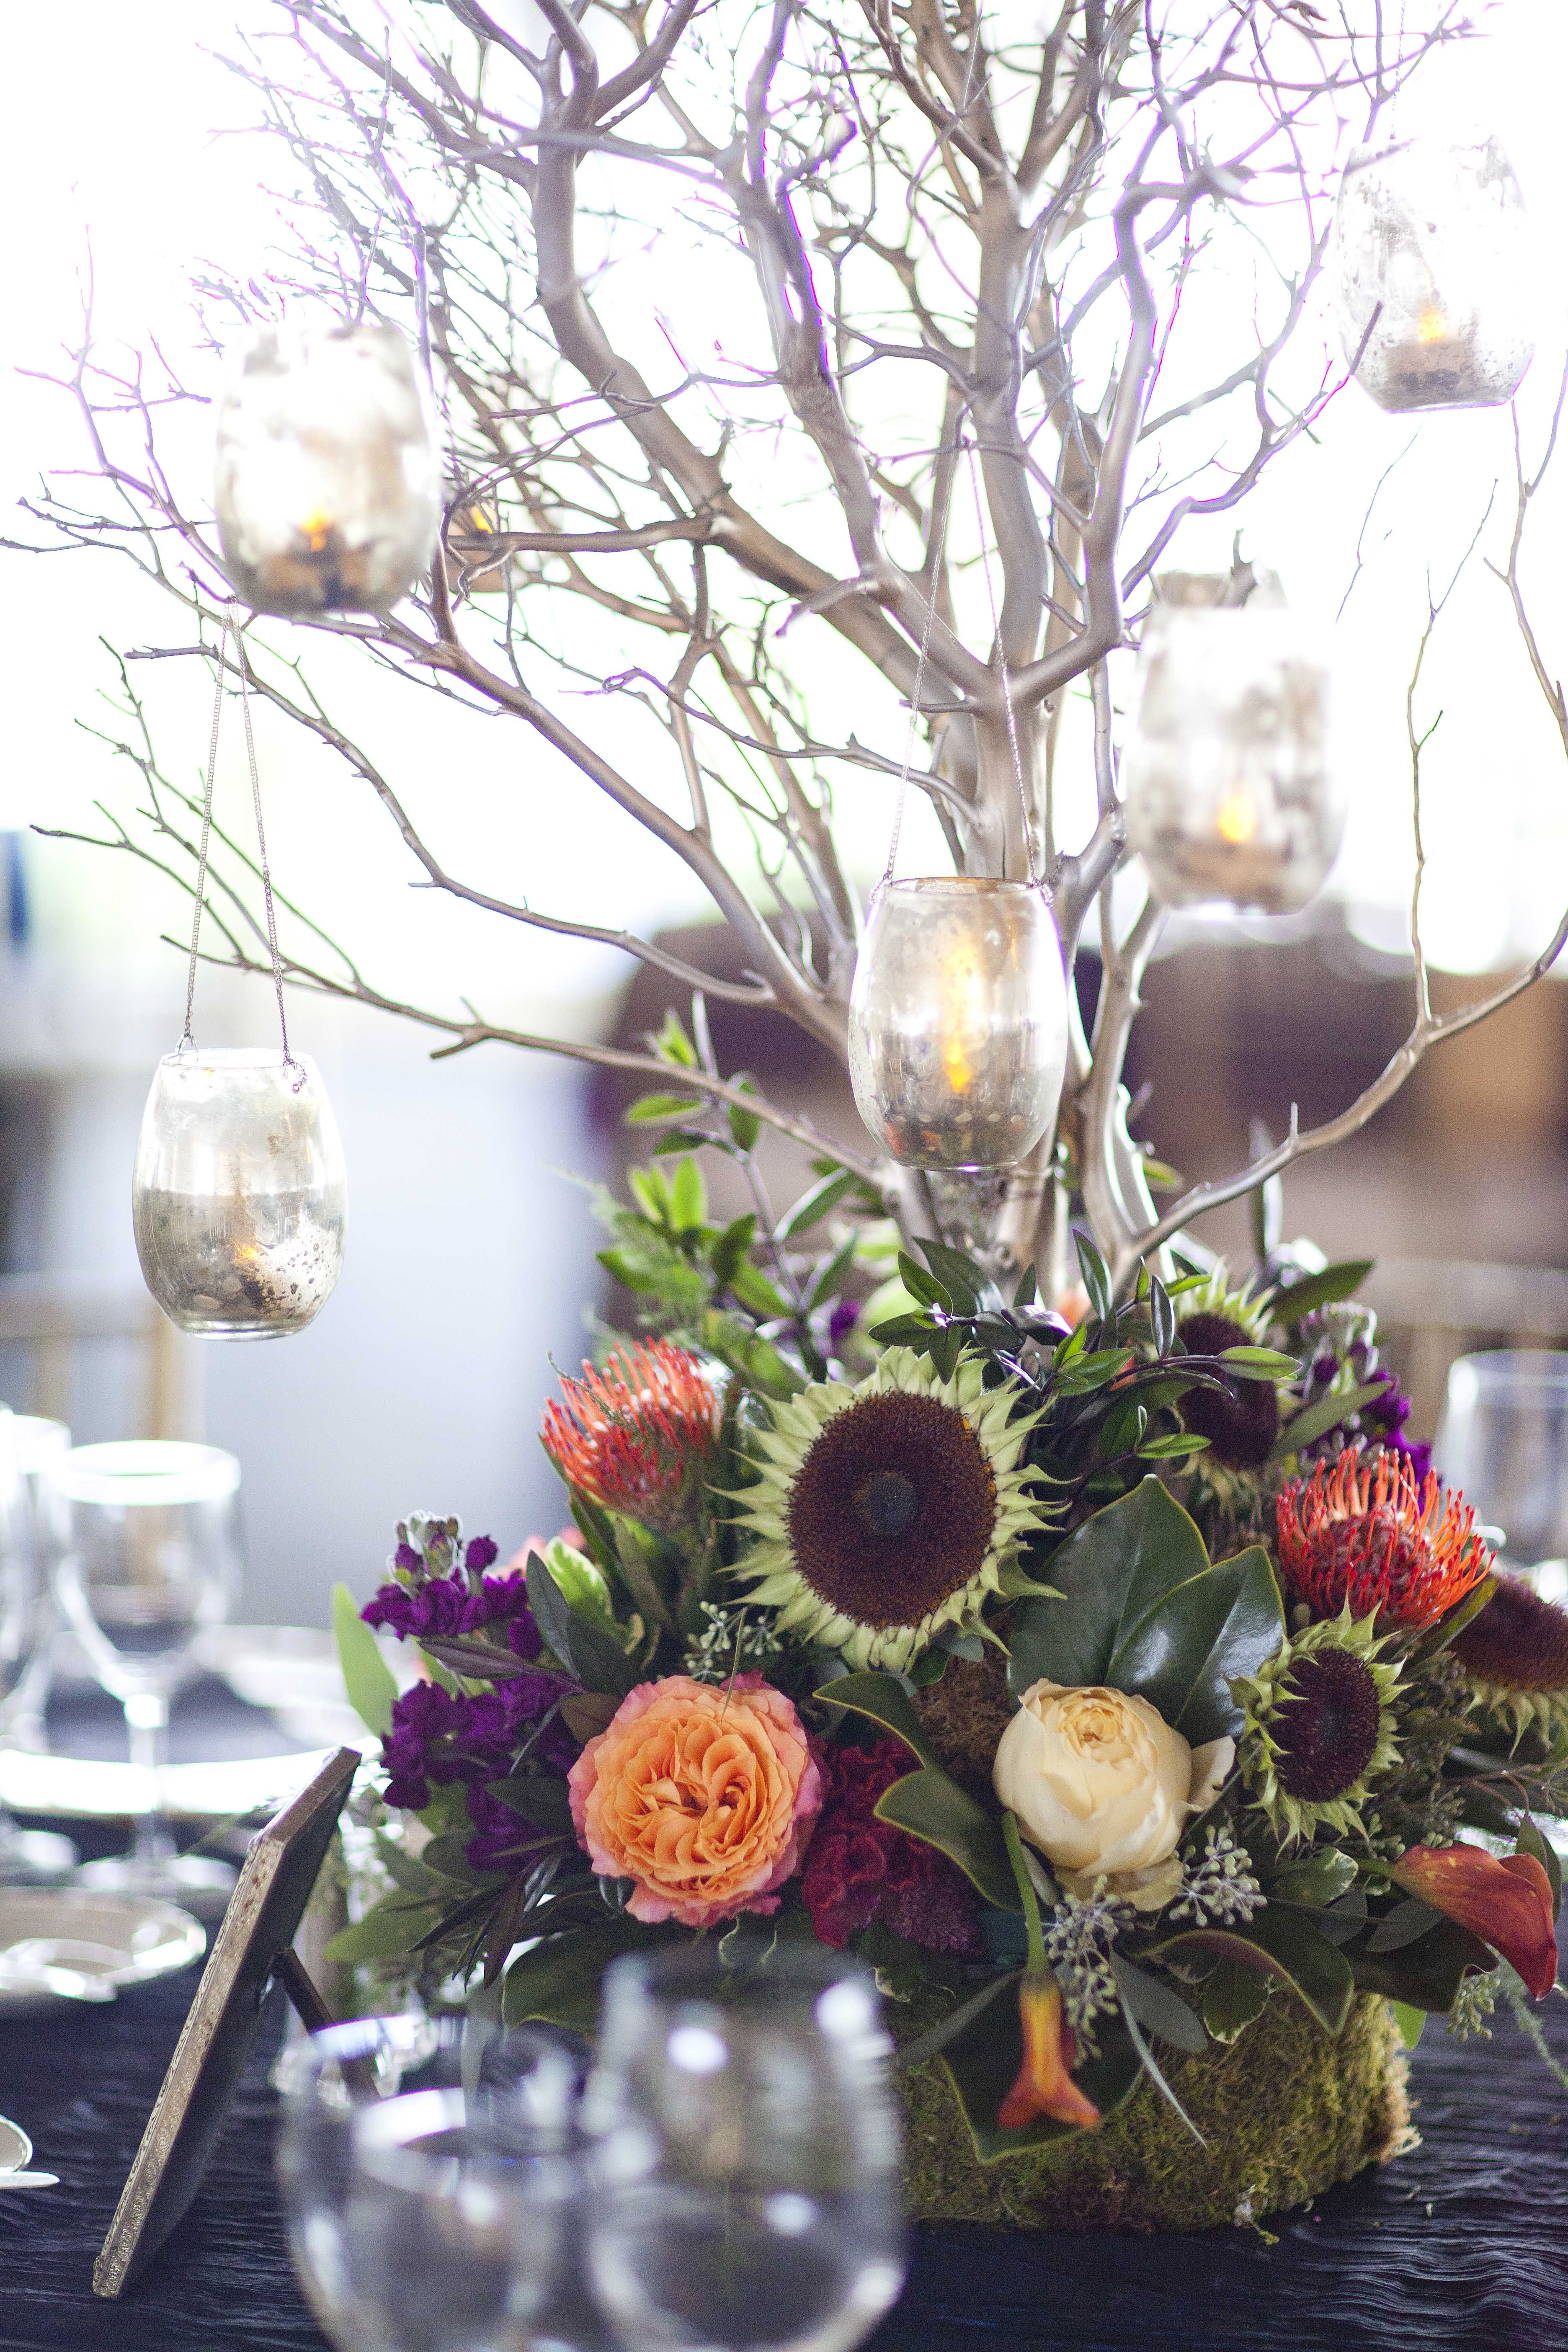 Hot fall wedding trends to steal right now a well